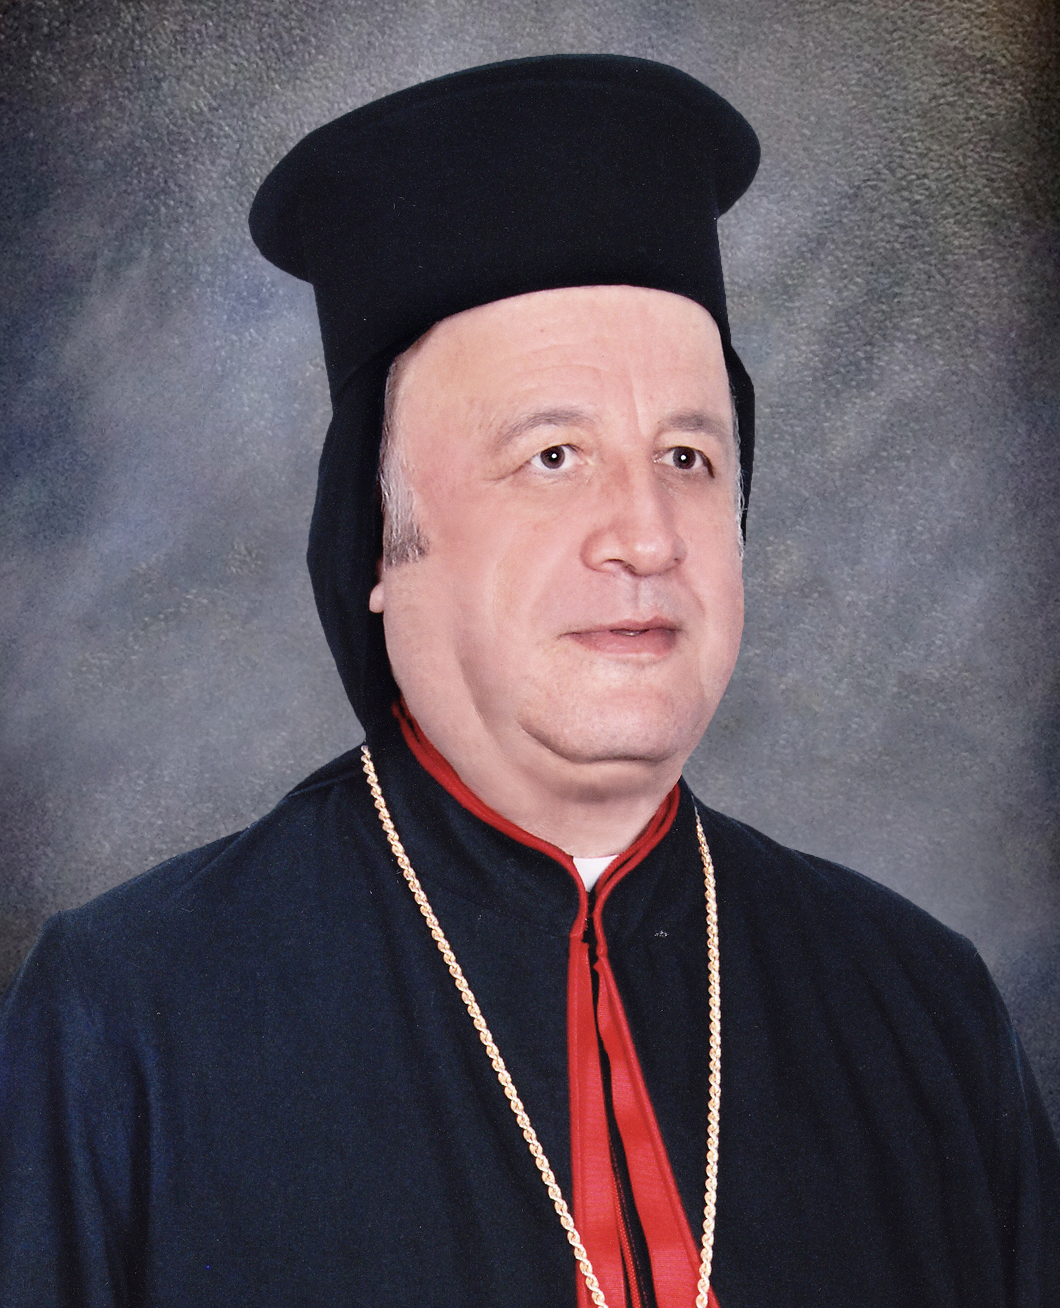 Yousif Benham Habash,  Bishop of the Eparchy of Our Lady of Deliverance